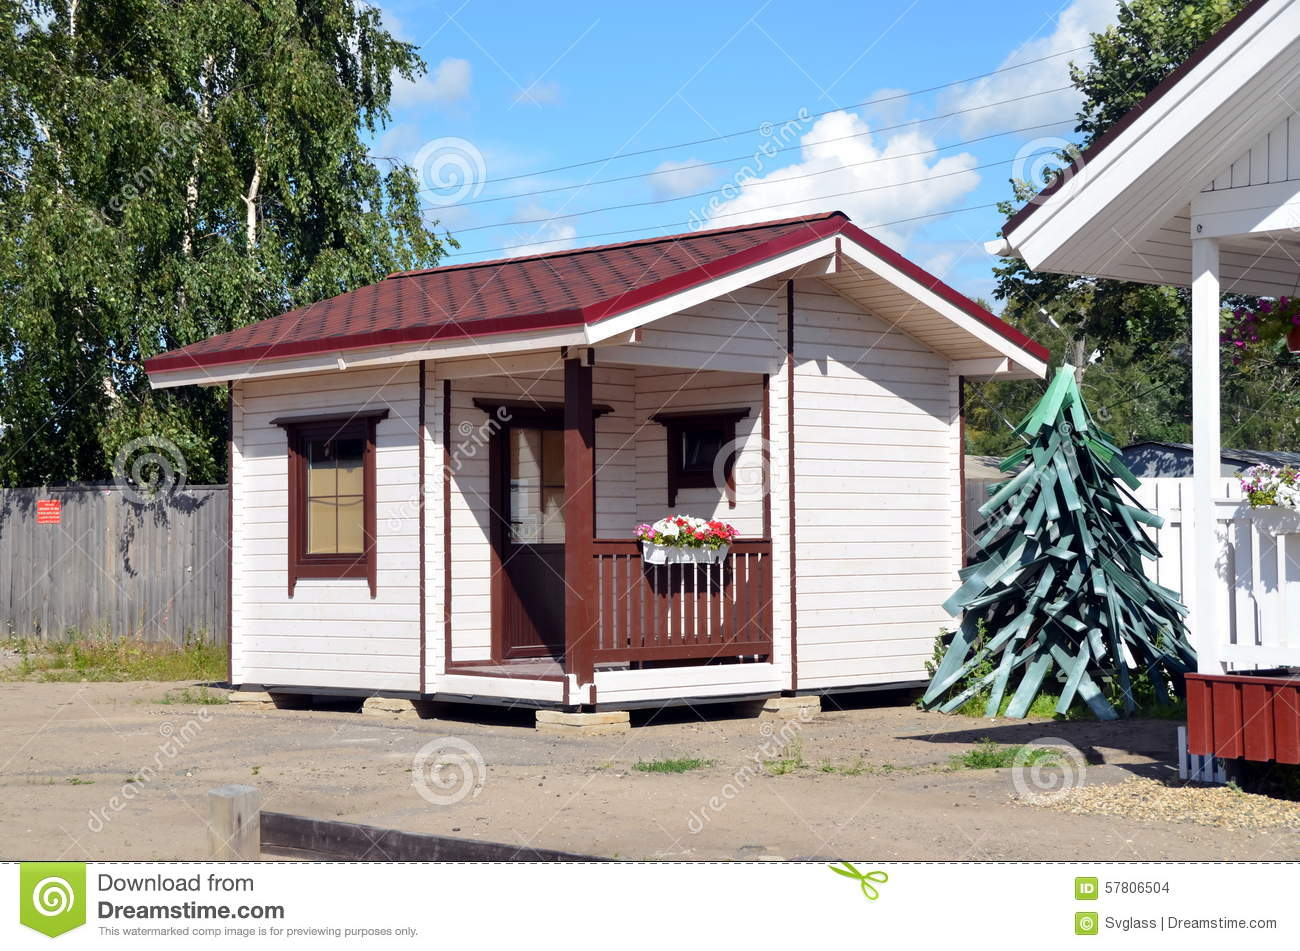 Small Wooden House For Sale Editorial Stock Image Image 57806504